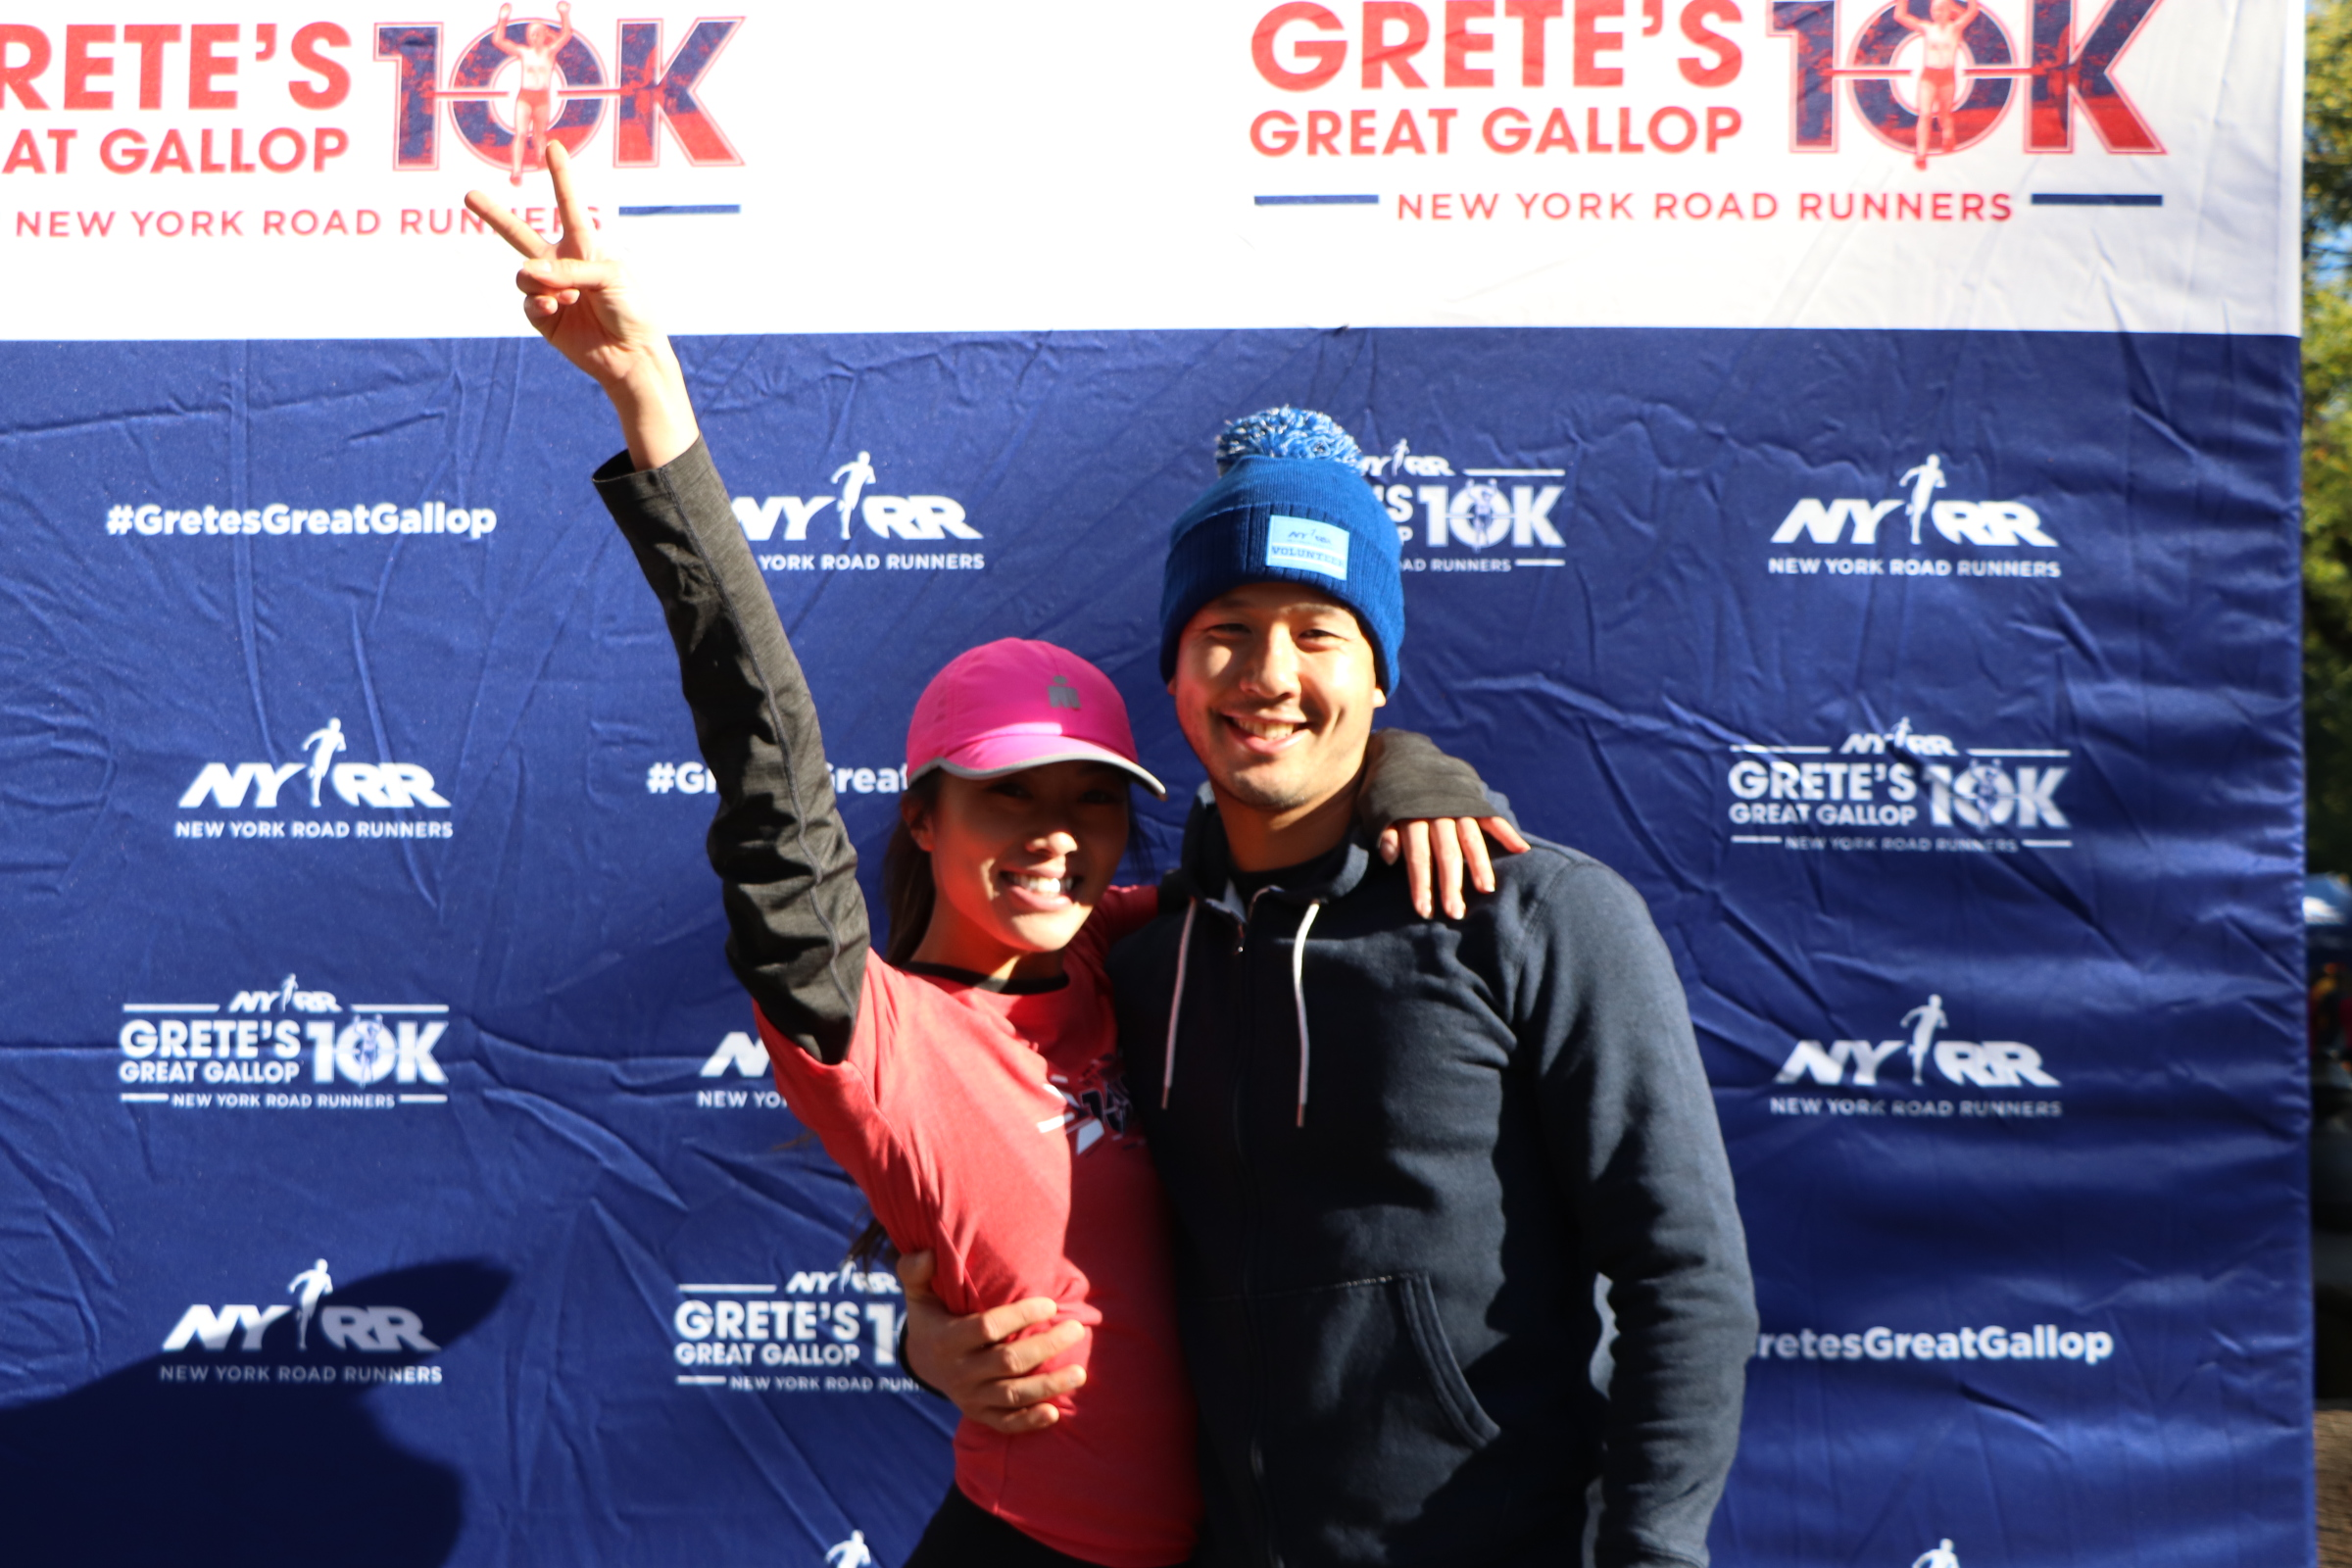 A man and a woman posing in front of the NYRR Grete's Great Gallop 10K Photo Booth